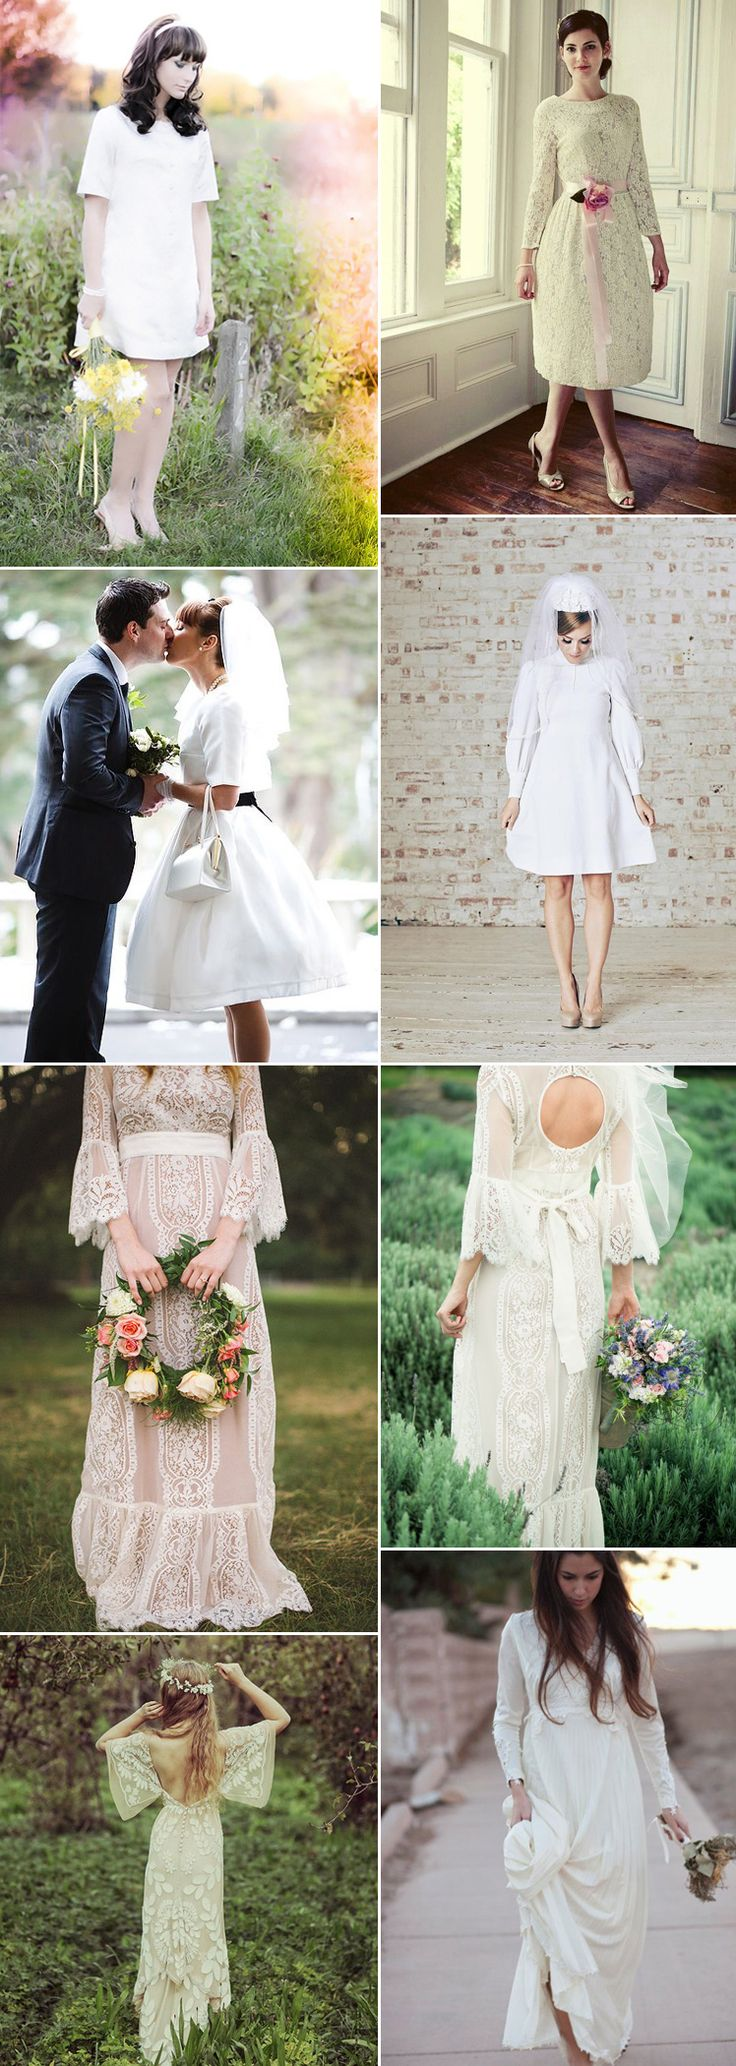 The 25 best 1960s wedding dresses ideas on pinterest 1960s take a look at wedding dresses perfect for a 1960s or 1970s inspired theme at gs ombrellifo Image collections